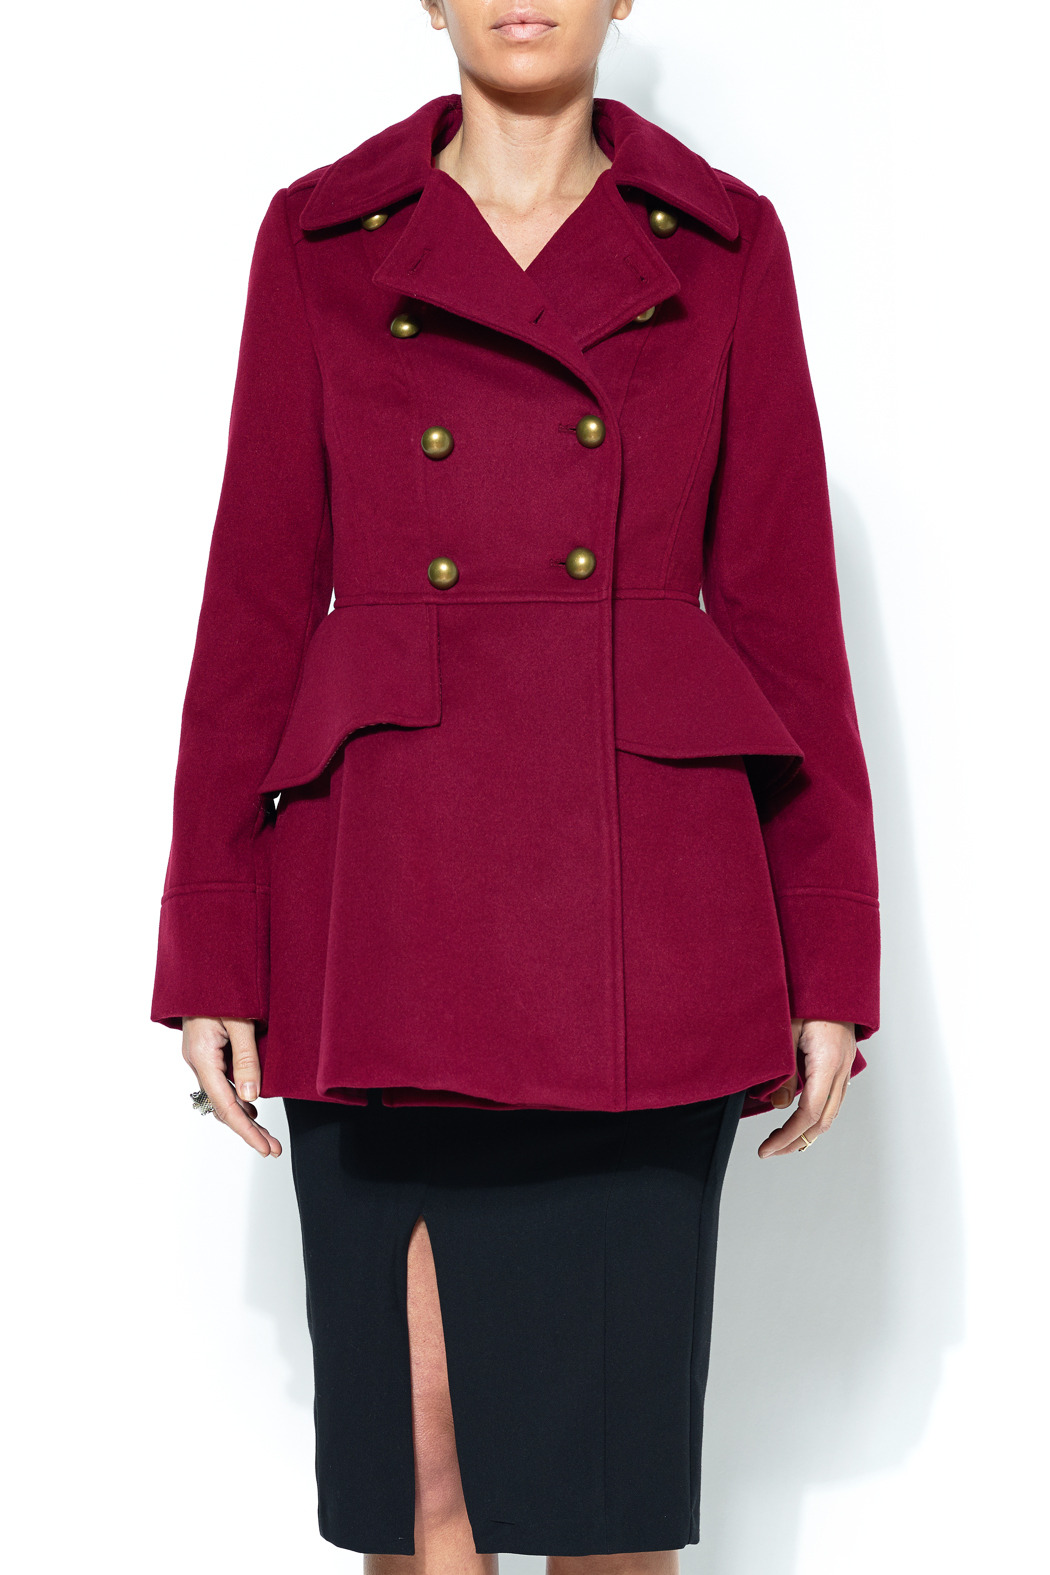 Santa Fe Apparel Military Peplum Coat - Front Cropped Image